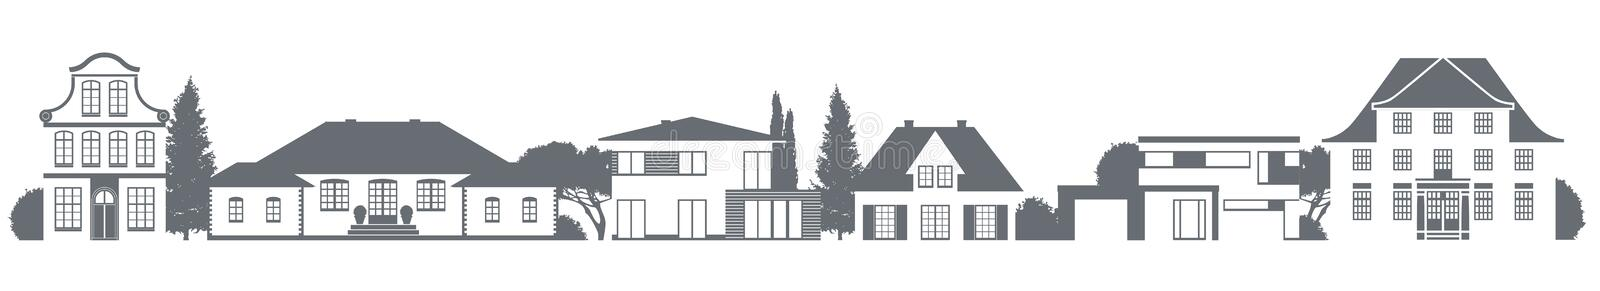 Different homes. A vector variety of homes in different architectural styles royalty free illustration